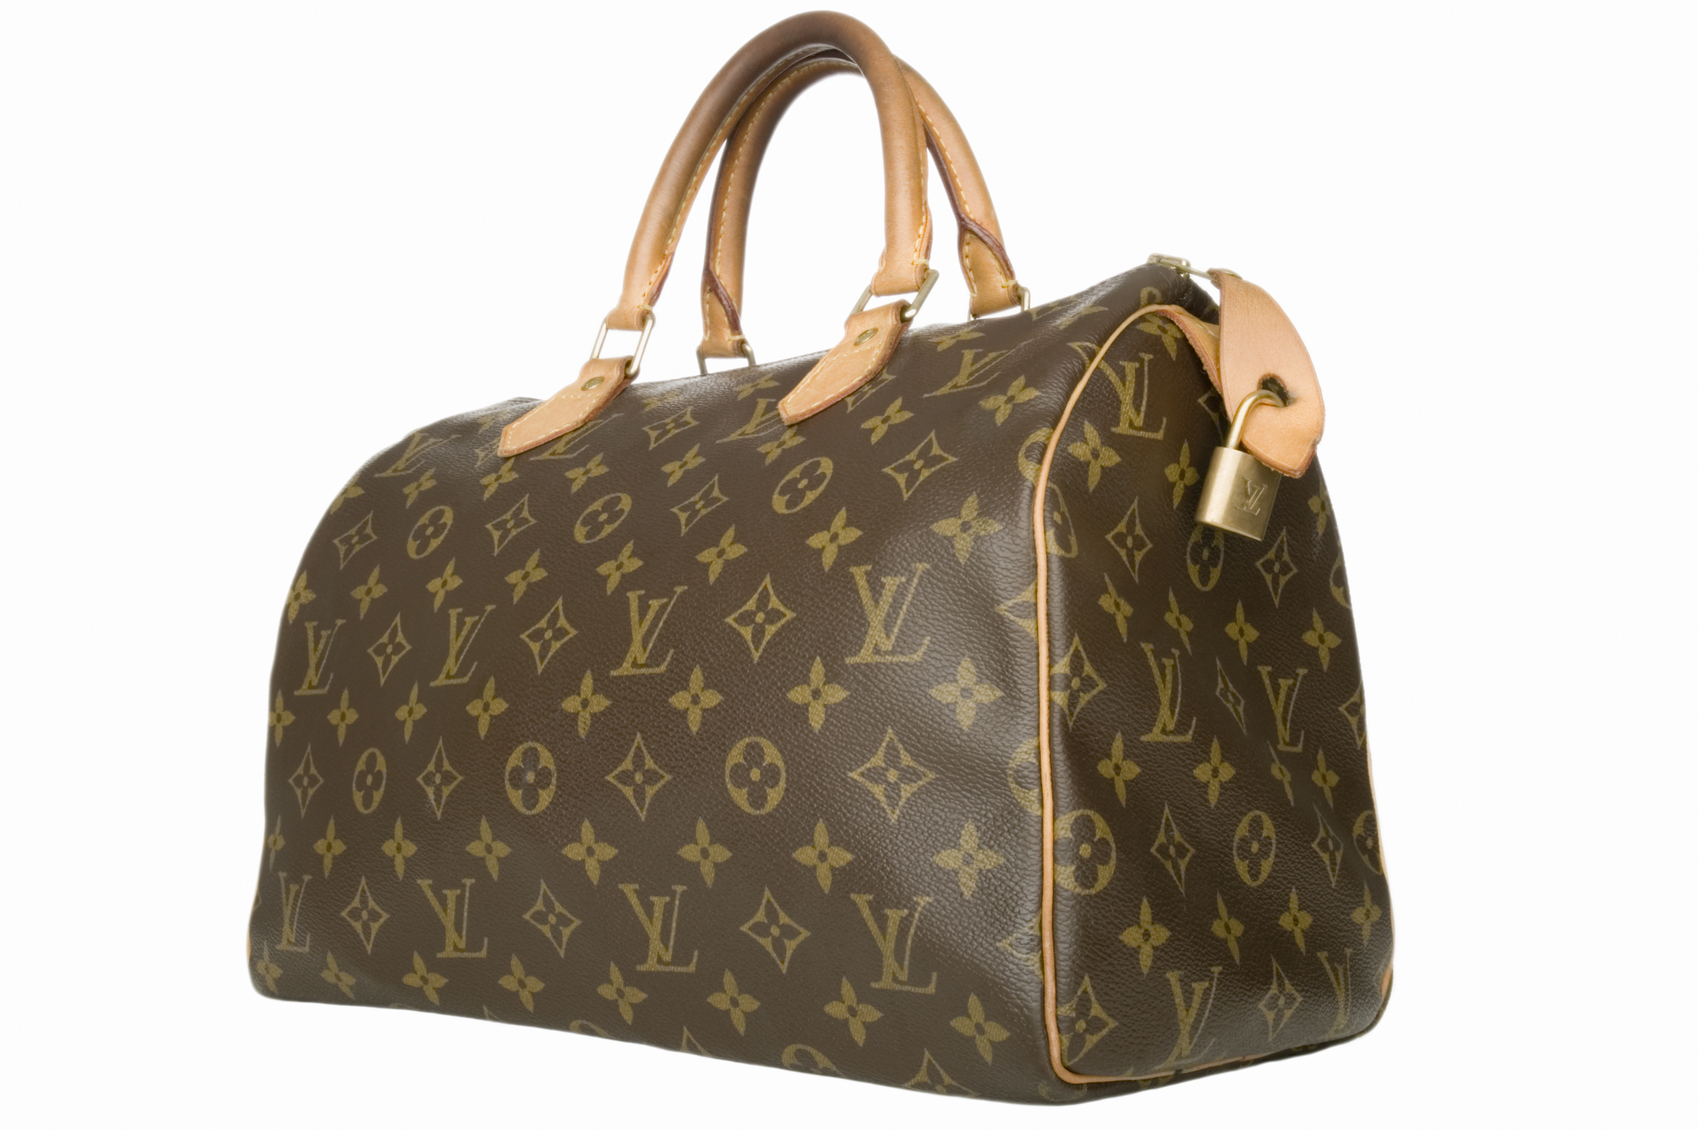 How to Spot a Fake Louis Vuitton Bag  2357364541ebc